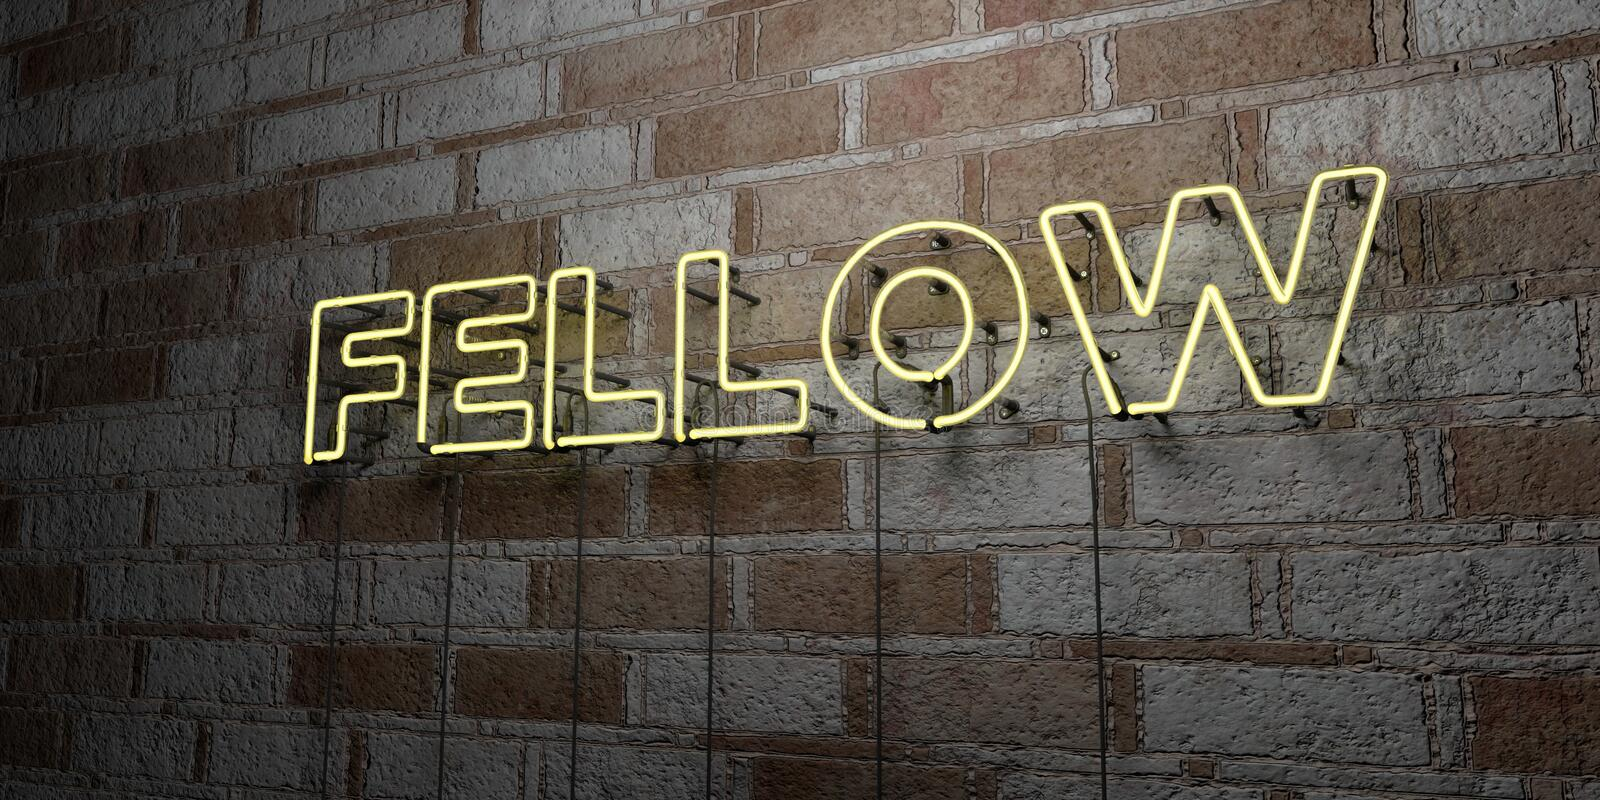 FELLOW - Glowing Neon Sign on stonework wall - 3D rendered royalty free stock illustration. Can be used for online banner ads and direct mailers royalty free illustration